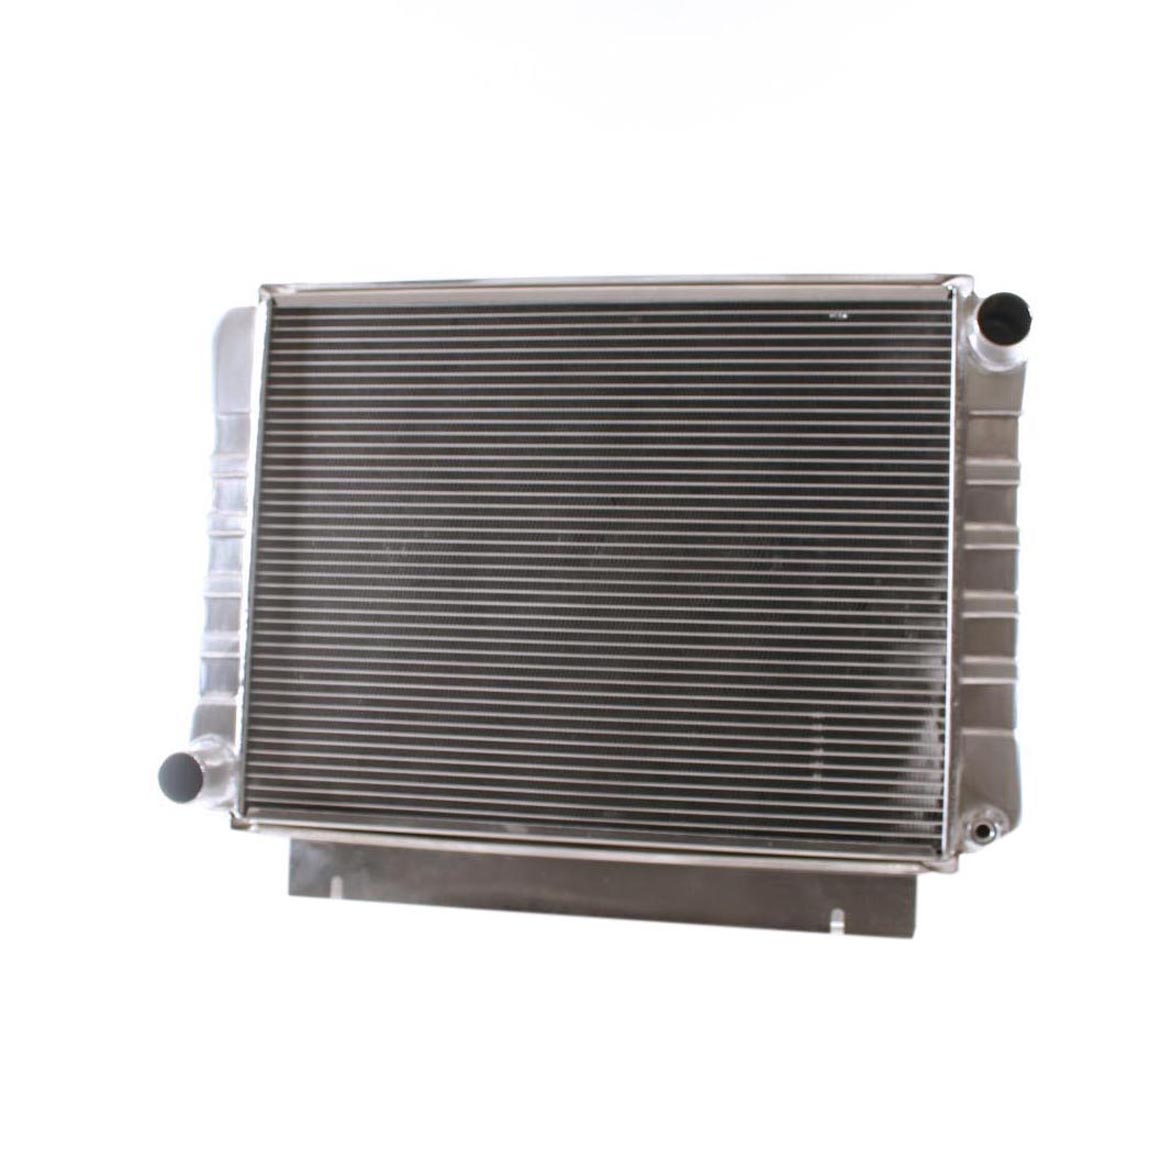 1963 Ford  Griffin Aluminum Radiator - Part Number 7-00040